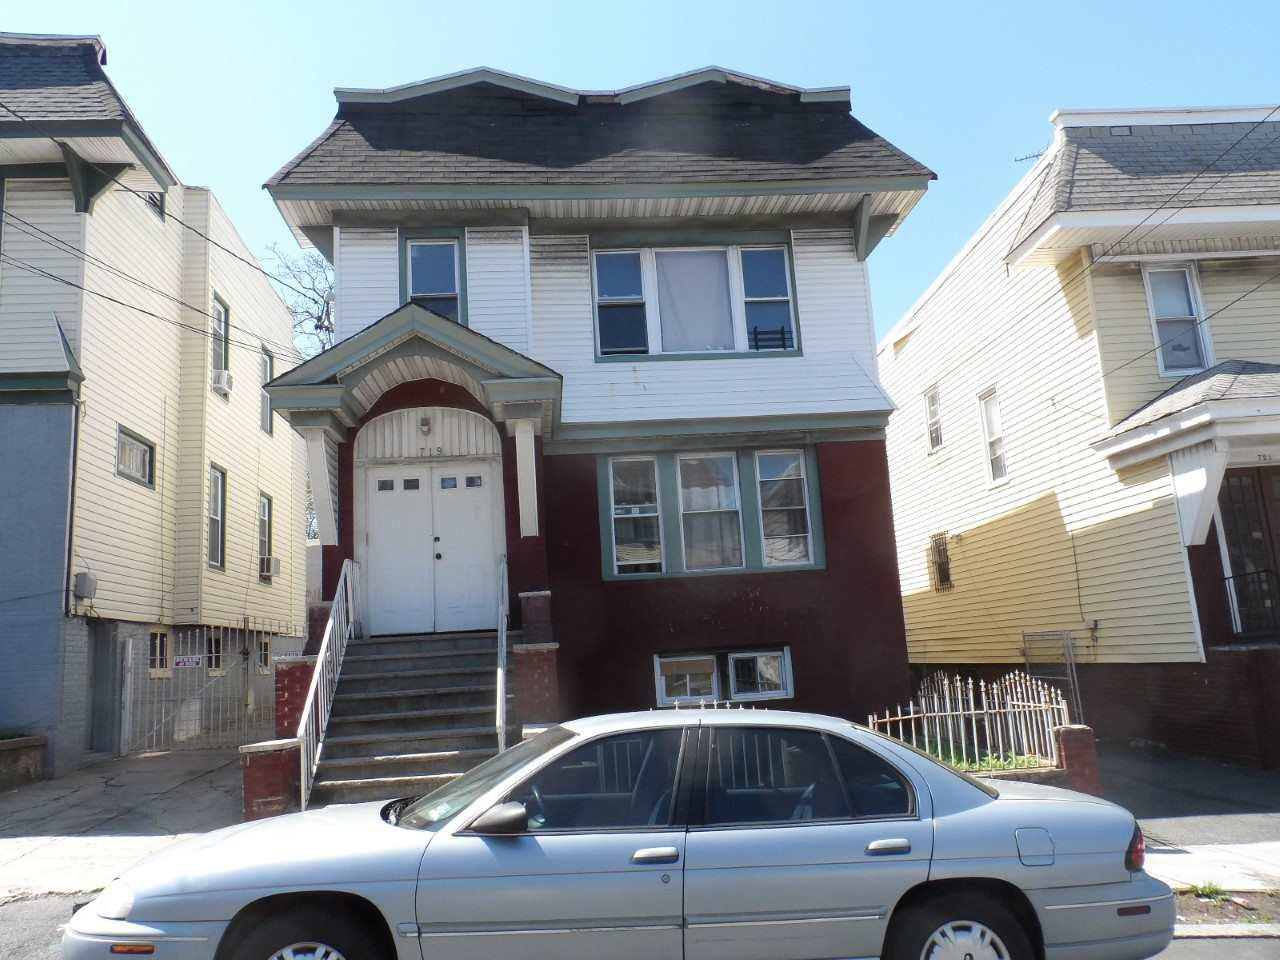 719 18TH AVE - Photo 1